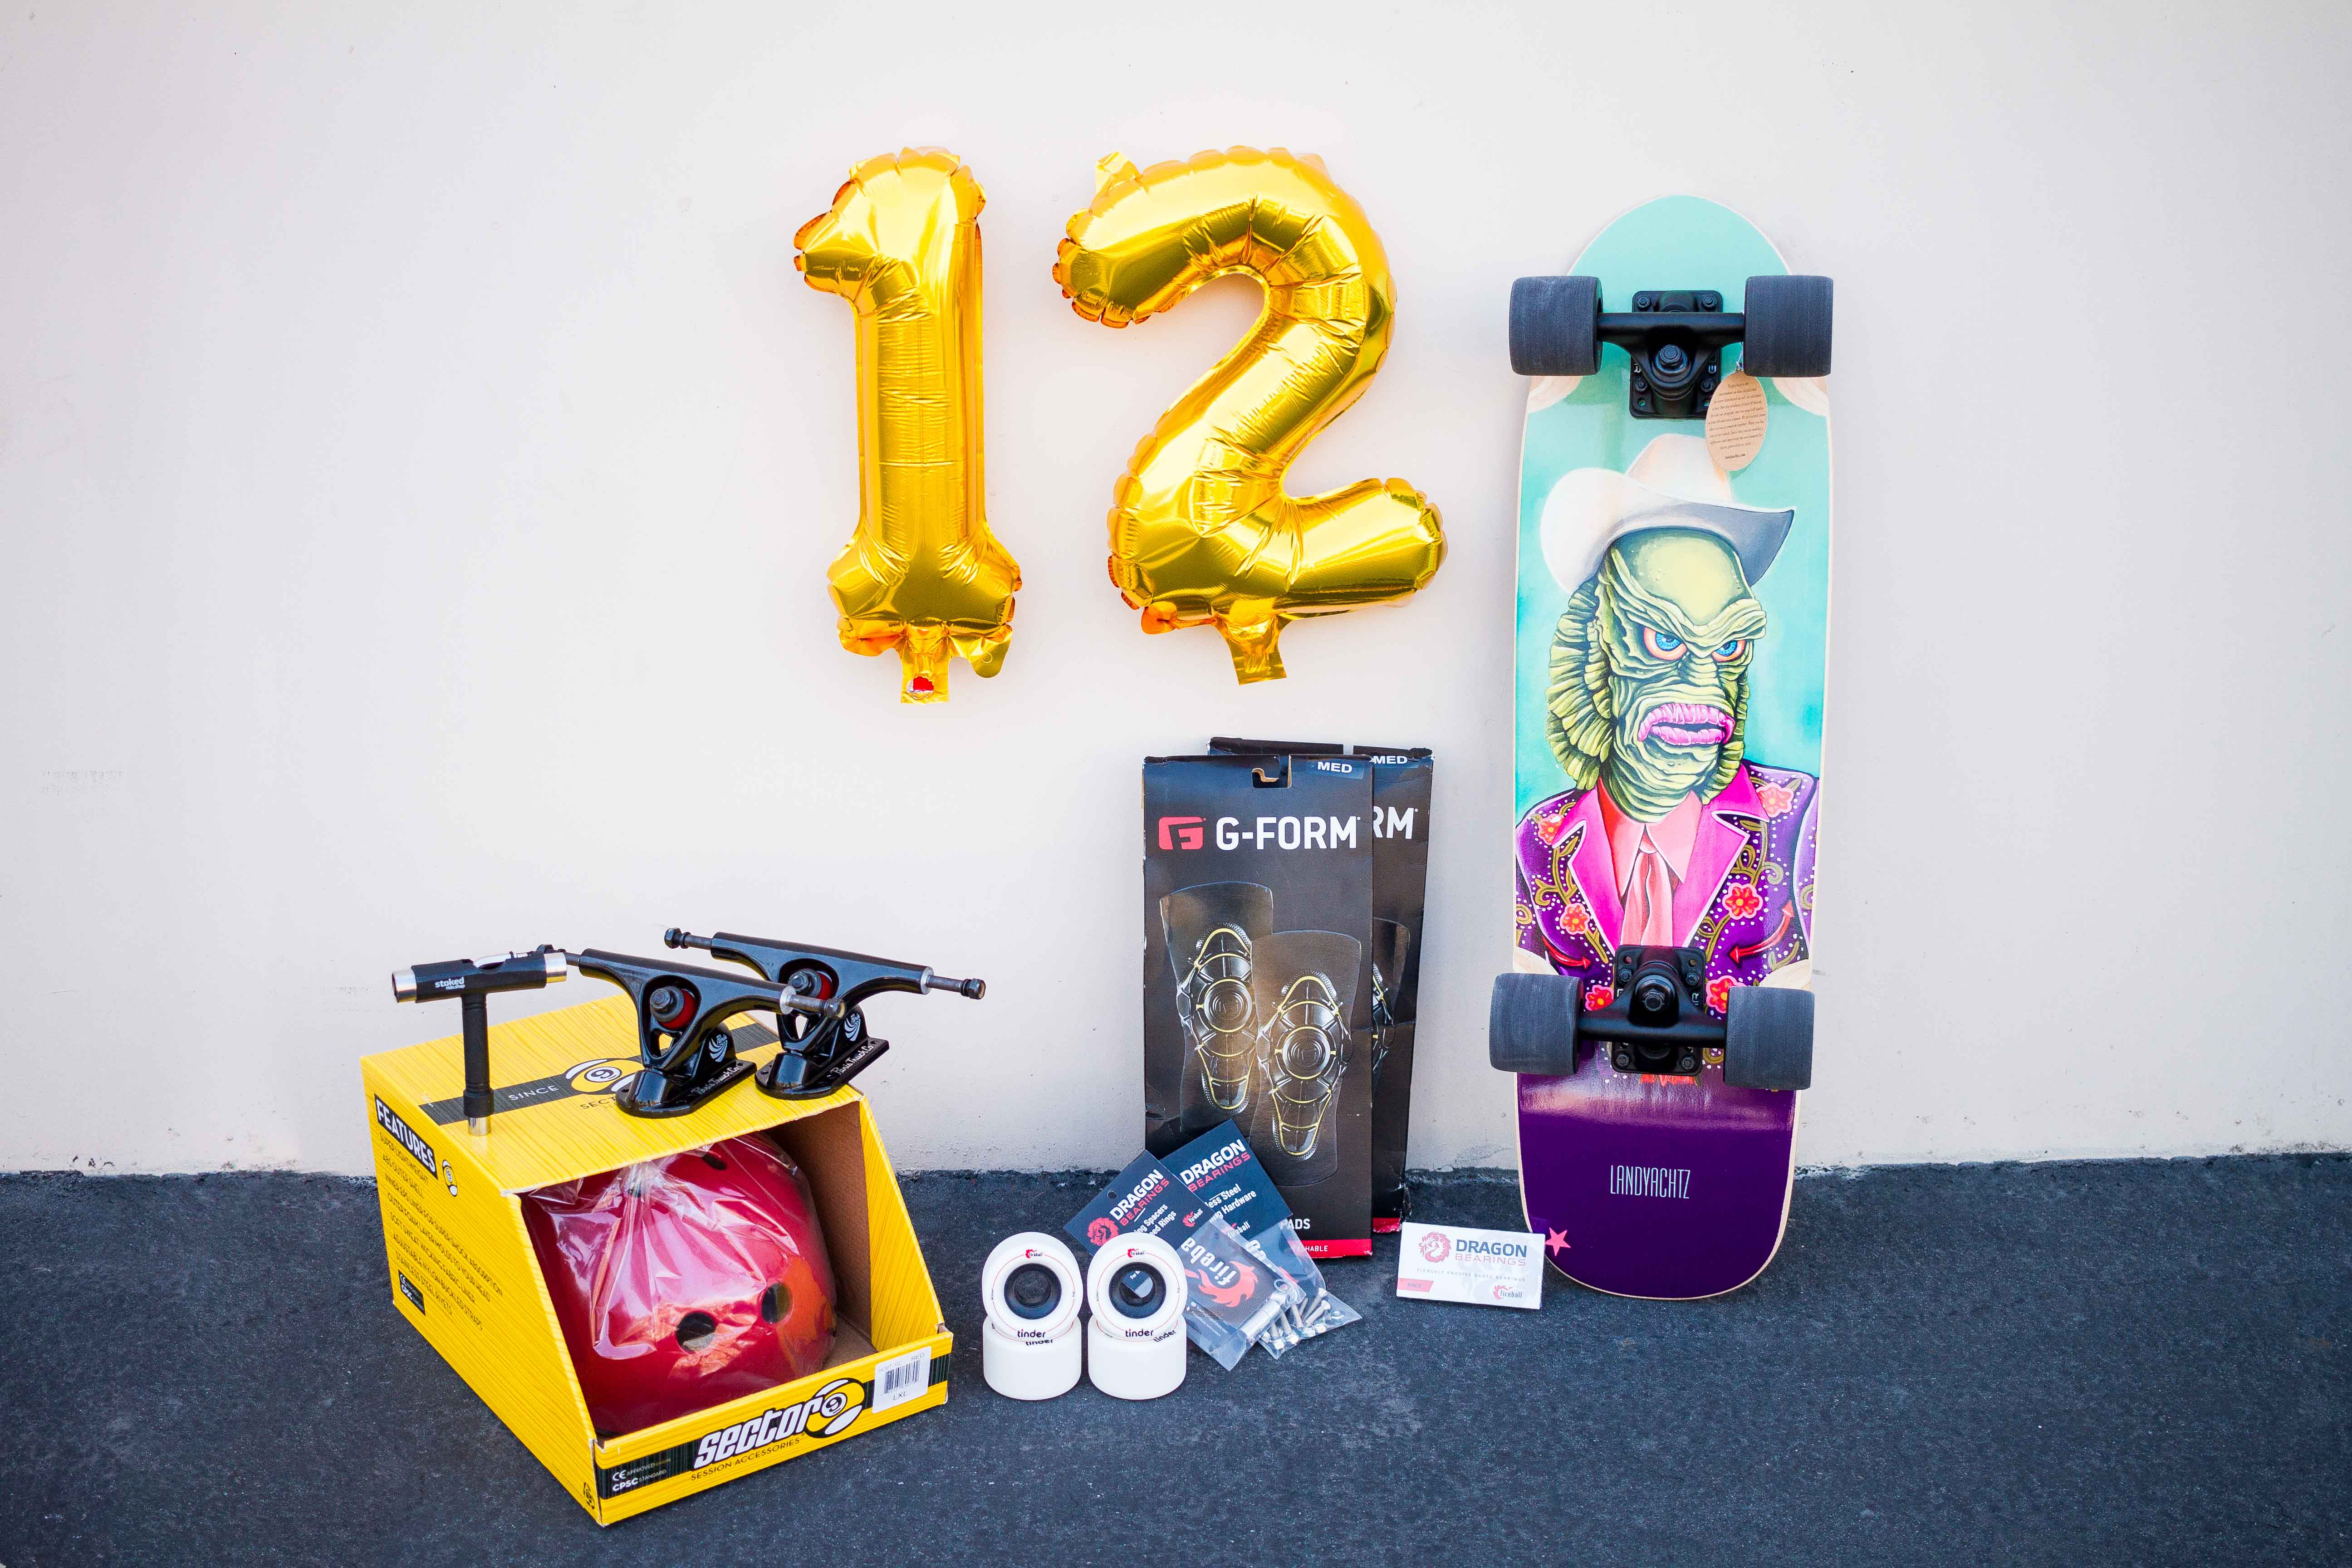 Stoked Ride Shop Give Away Longboard Dancing and Freestyle Landyachtz Sector 9 Paris Trucks Fireball Wheels and Bearings